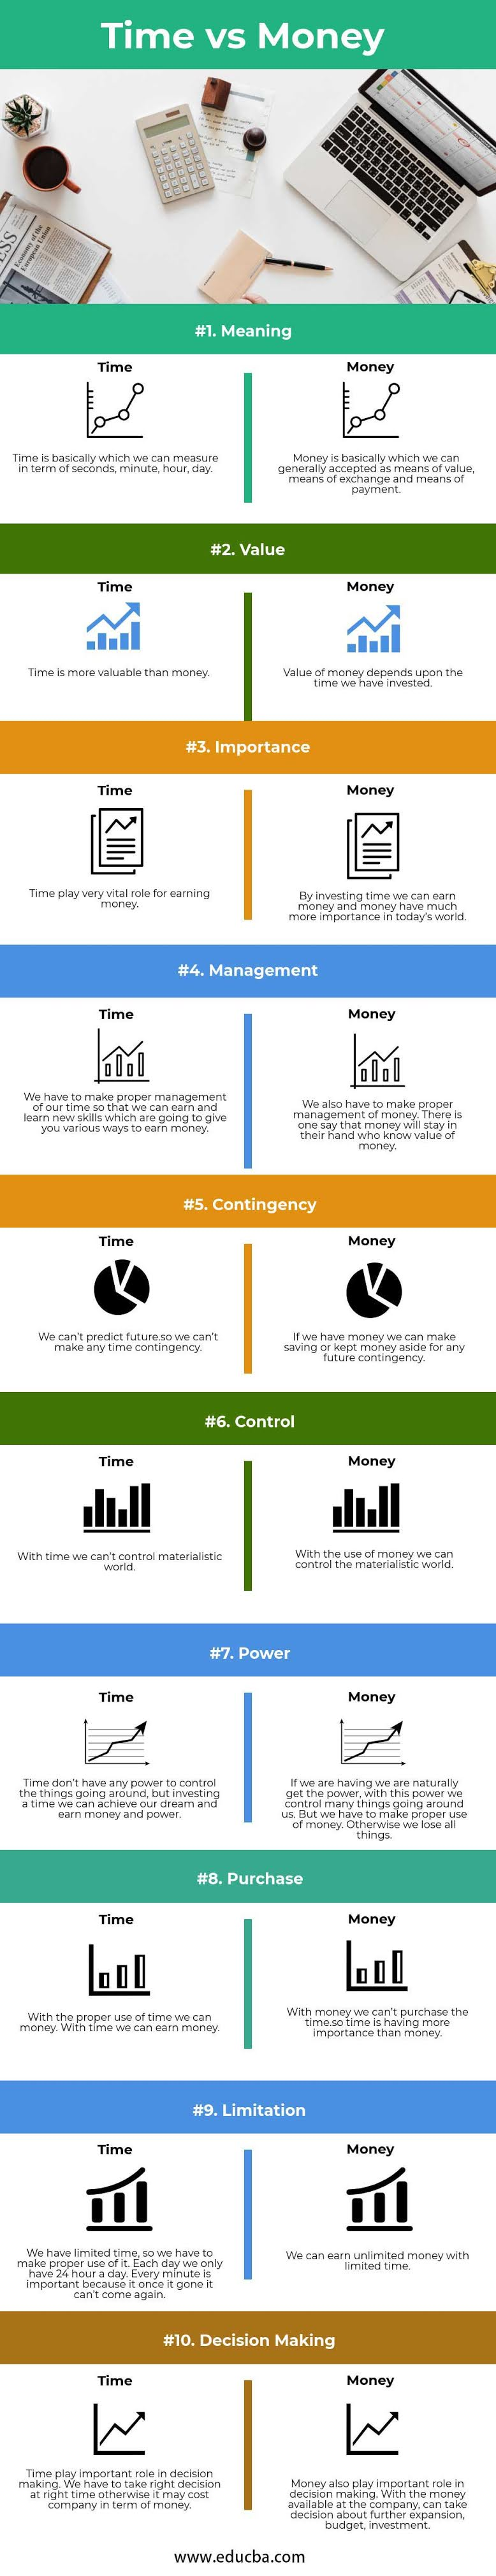 Time vs Money #infographic